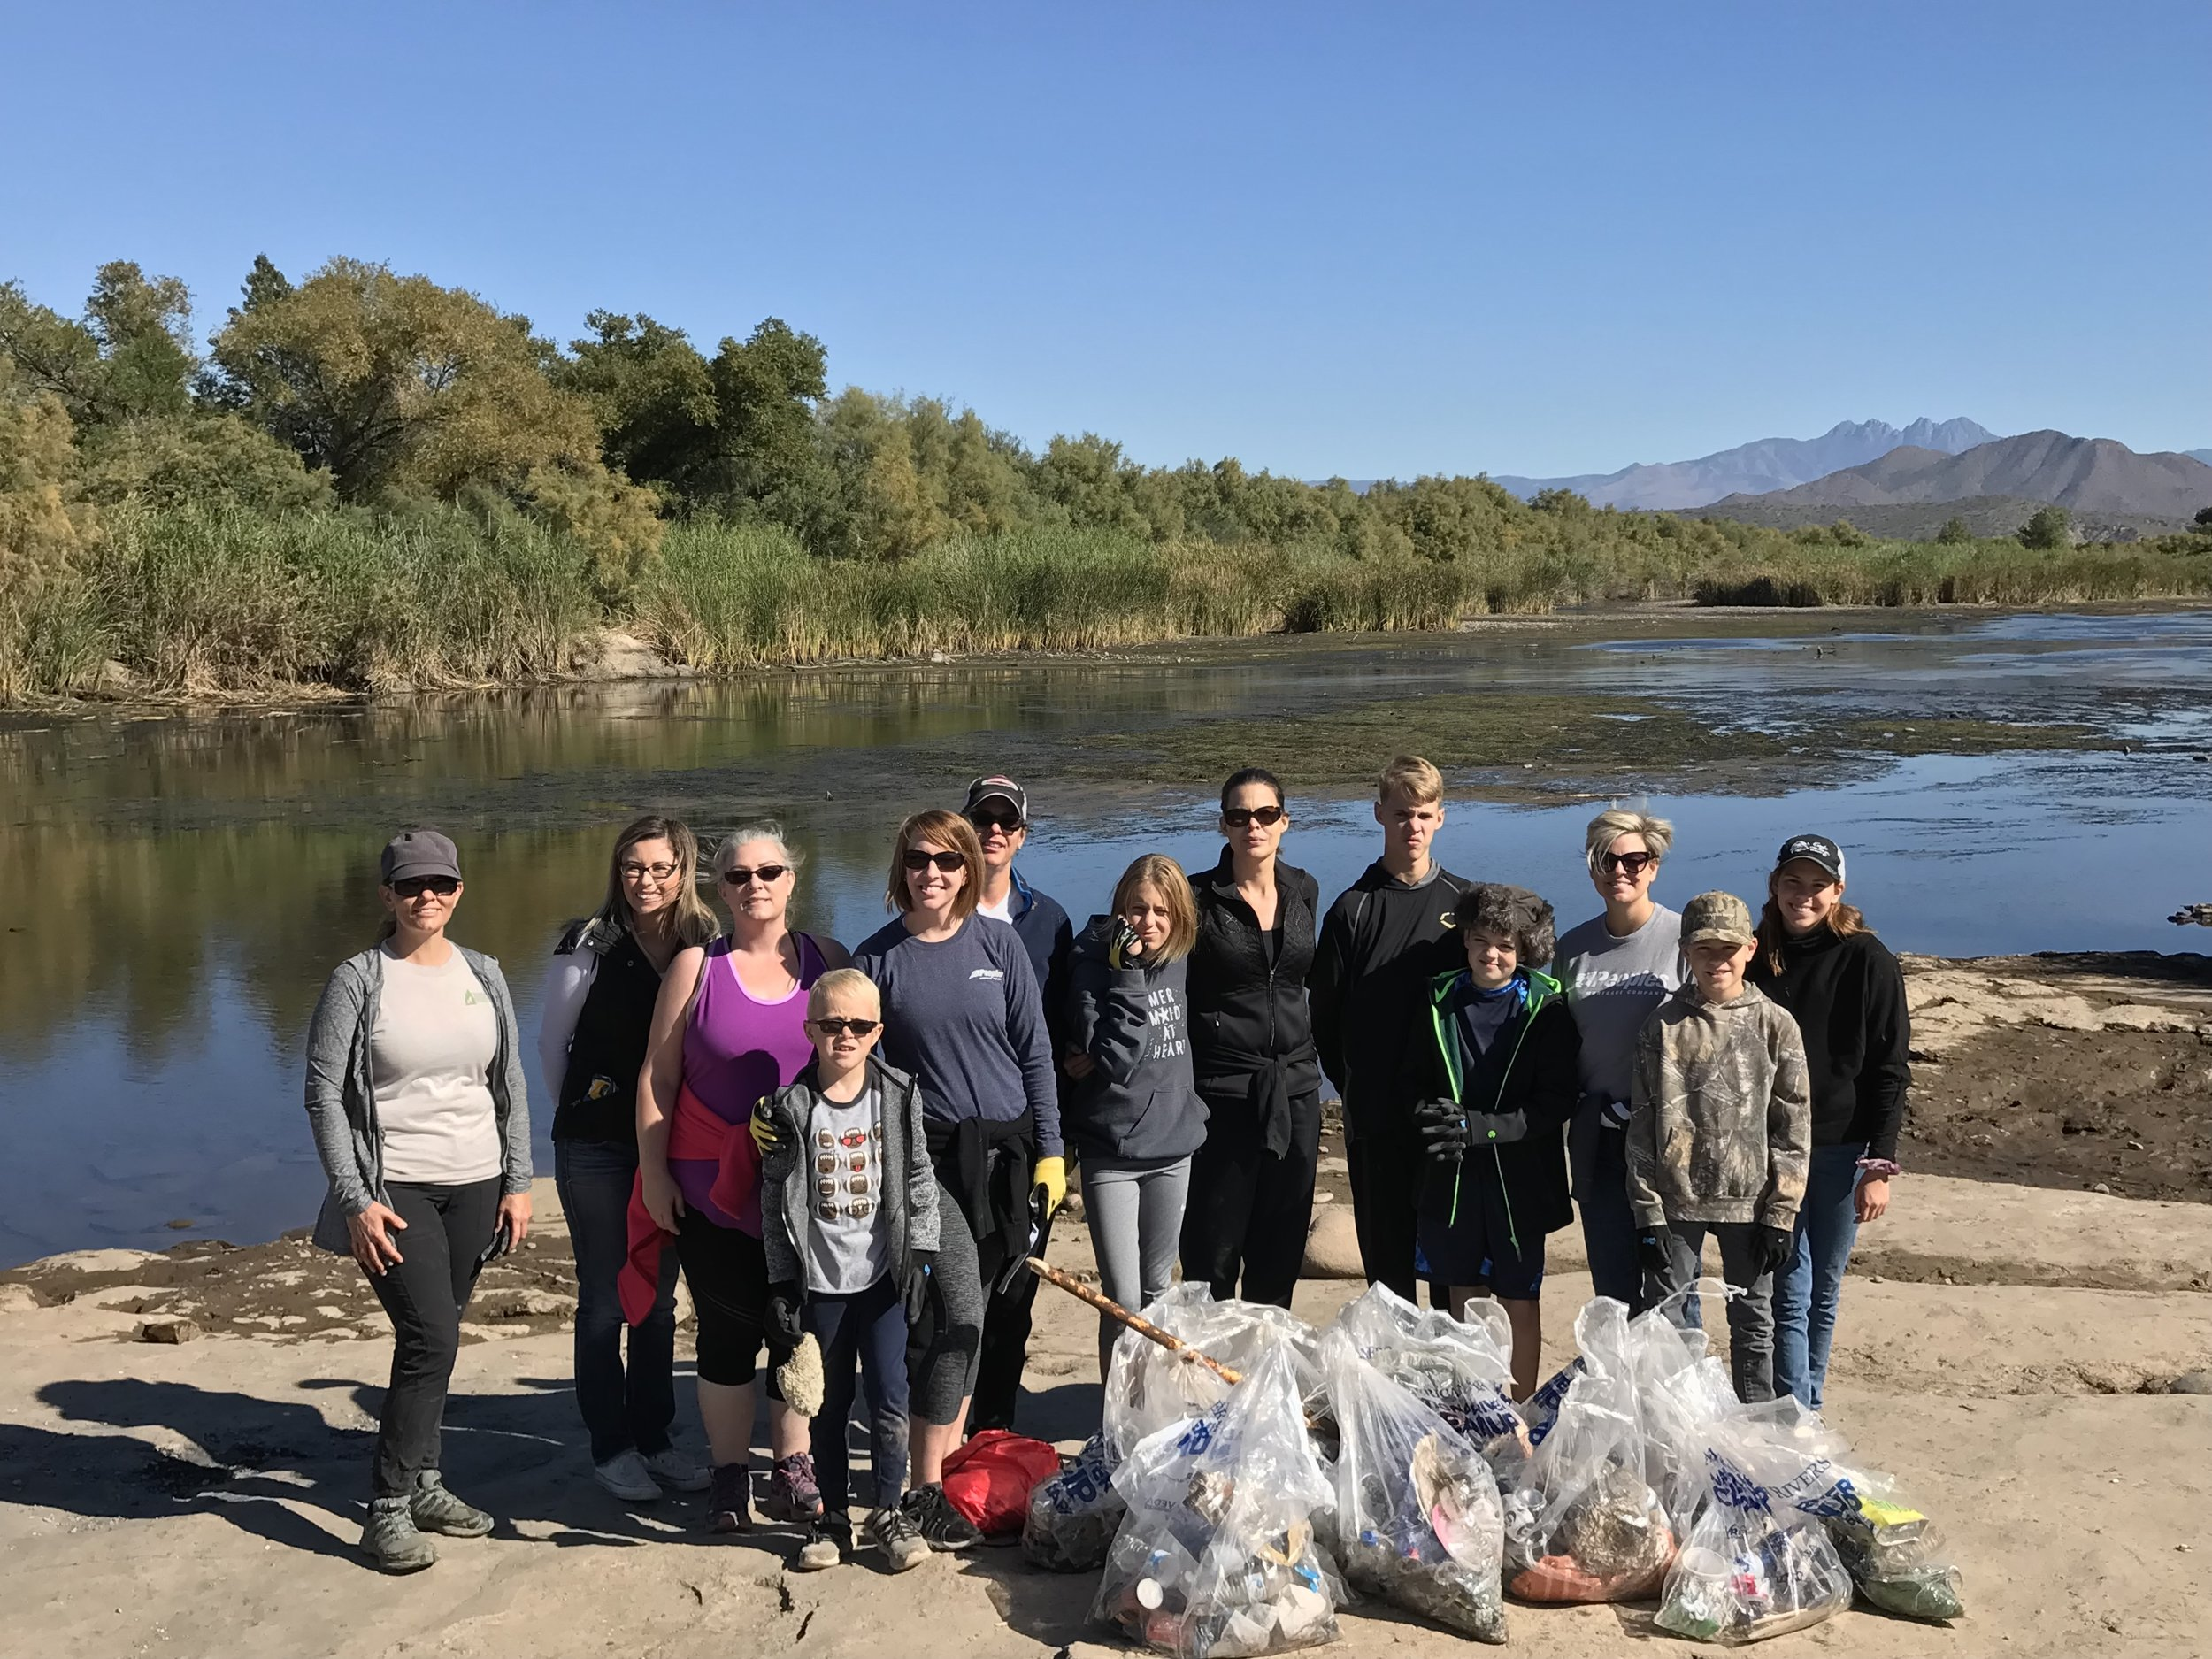 11/12/18 - Lower Salt River Cleanup at Phon D Sutton with Peoples Mortgage Company.Click HERE to view the project.